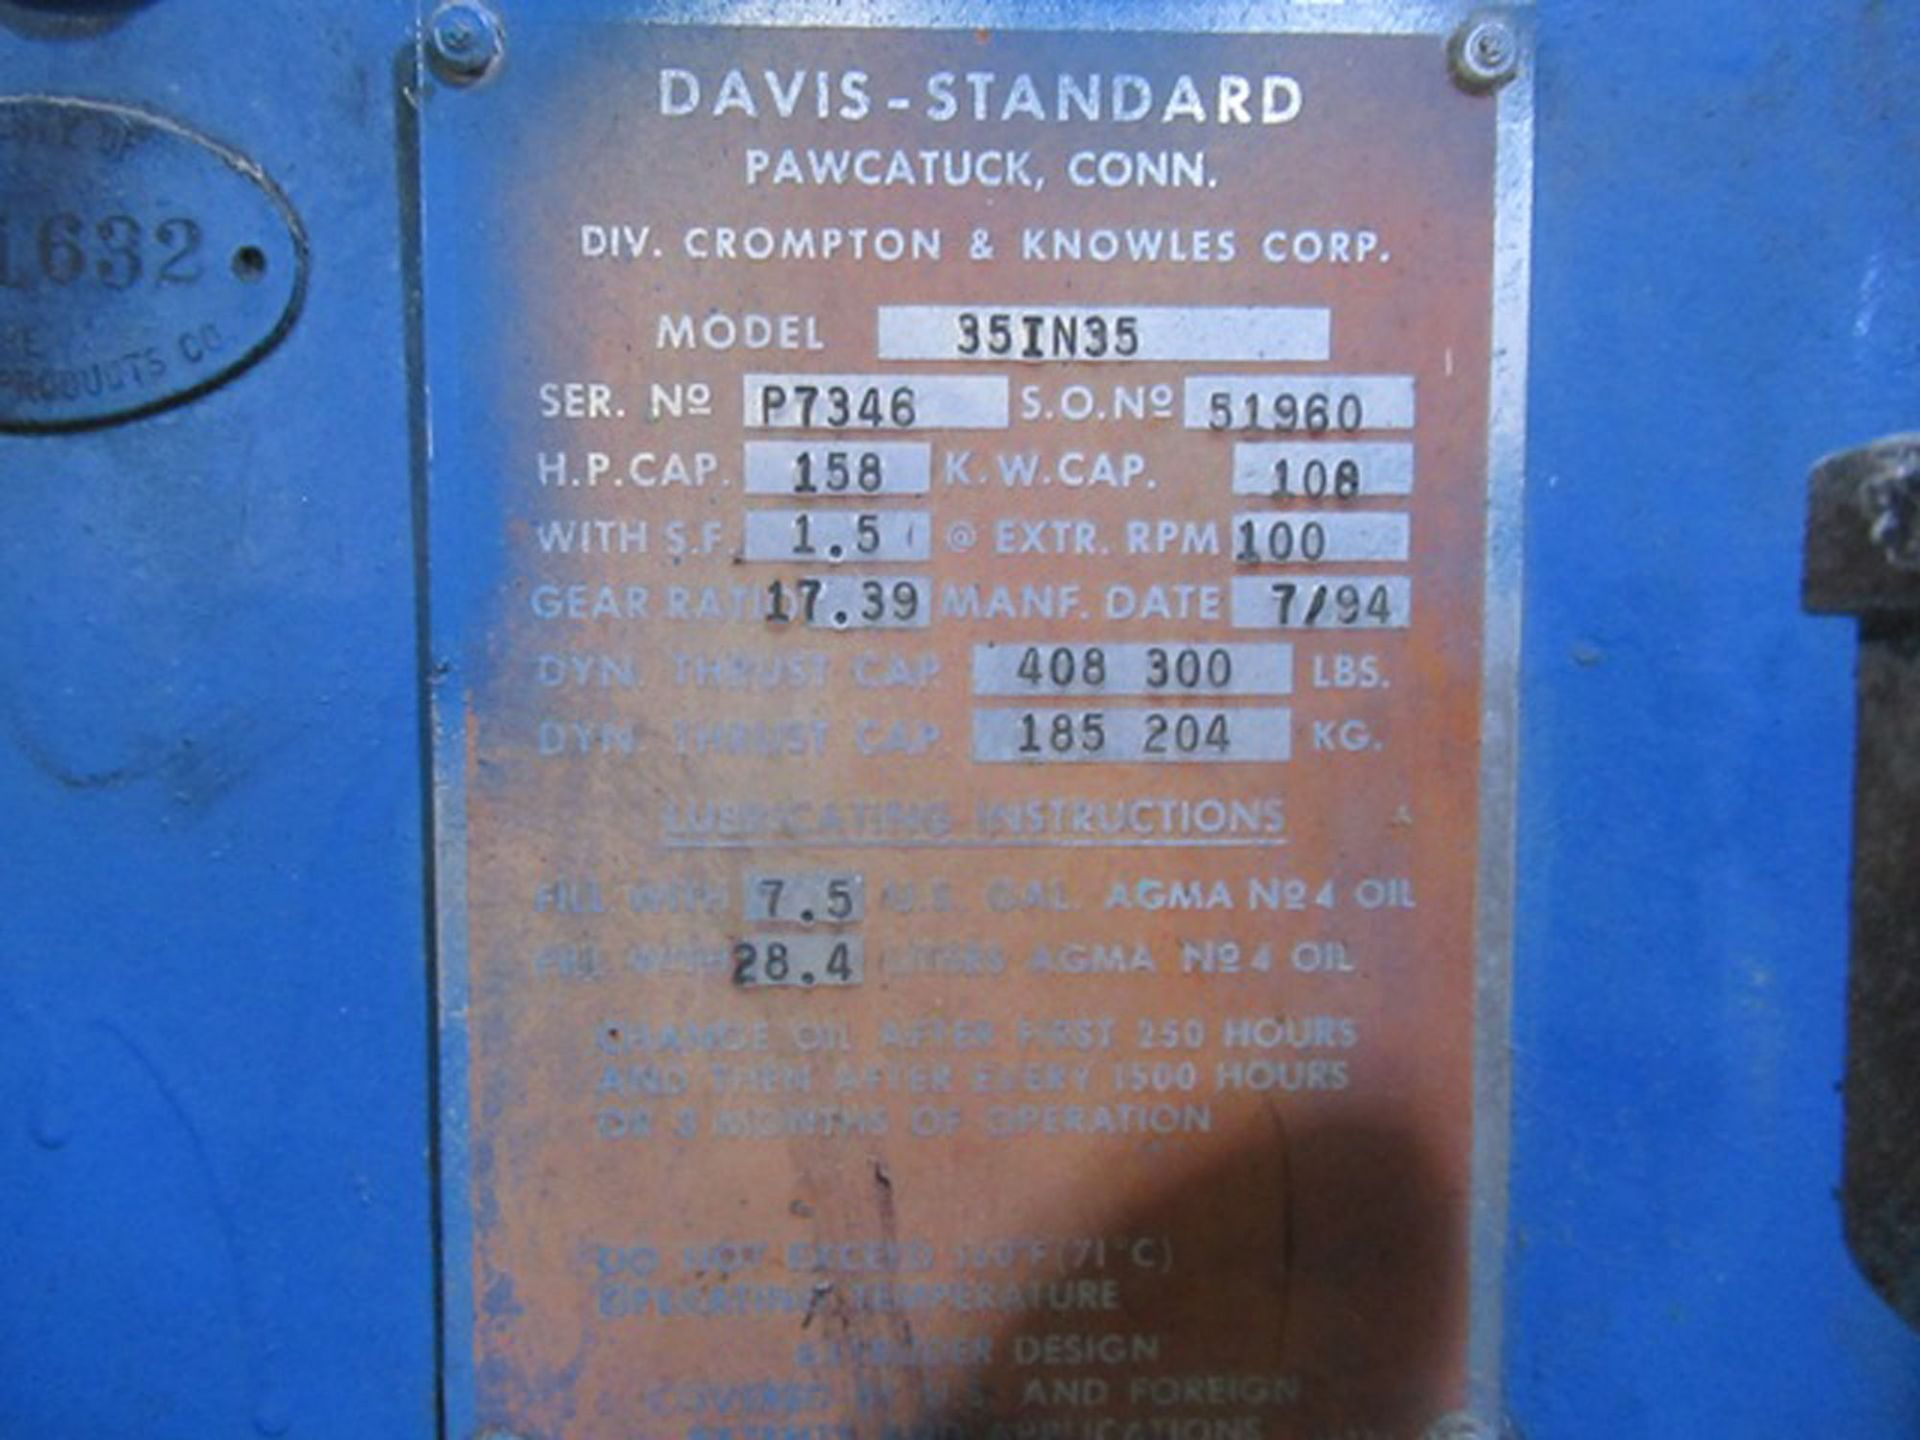 """DAVIS STANDARD 35IN35 3.5"""" CAPACITY SINGLE SCREW PLASTIC EXTRUDER WITH 158 HP RATED GEARBOX, 17.39:1 - Image 6 of 10"""